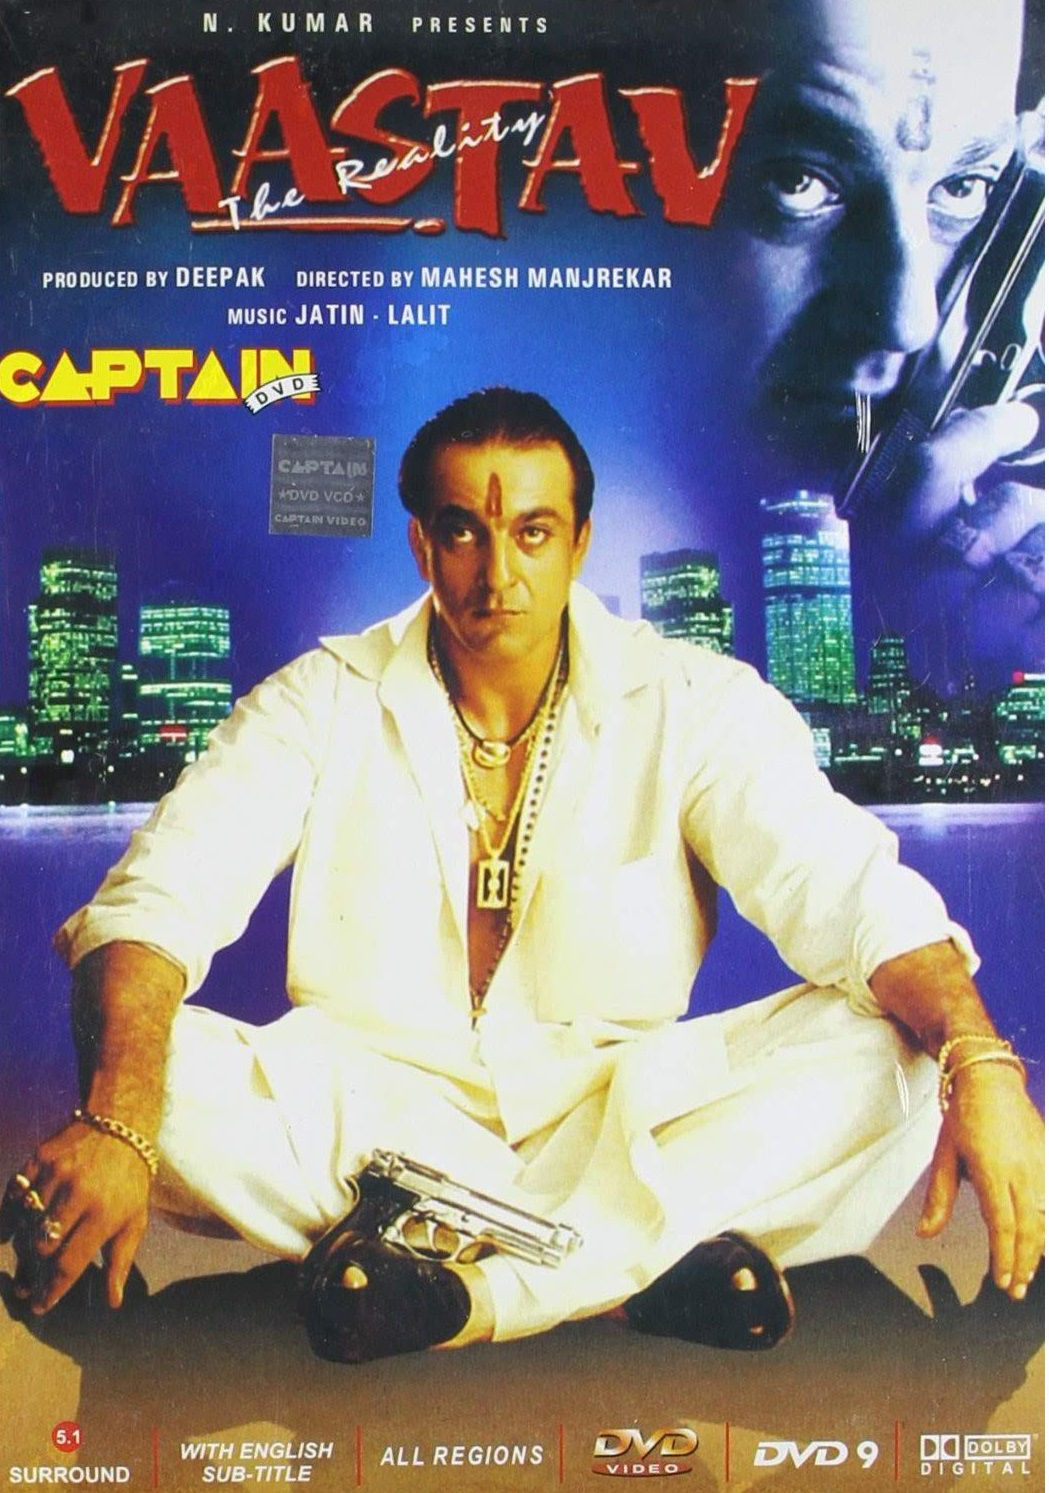 Vaastav Movie Poster - Sanjay Dutt